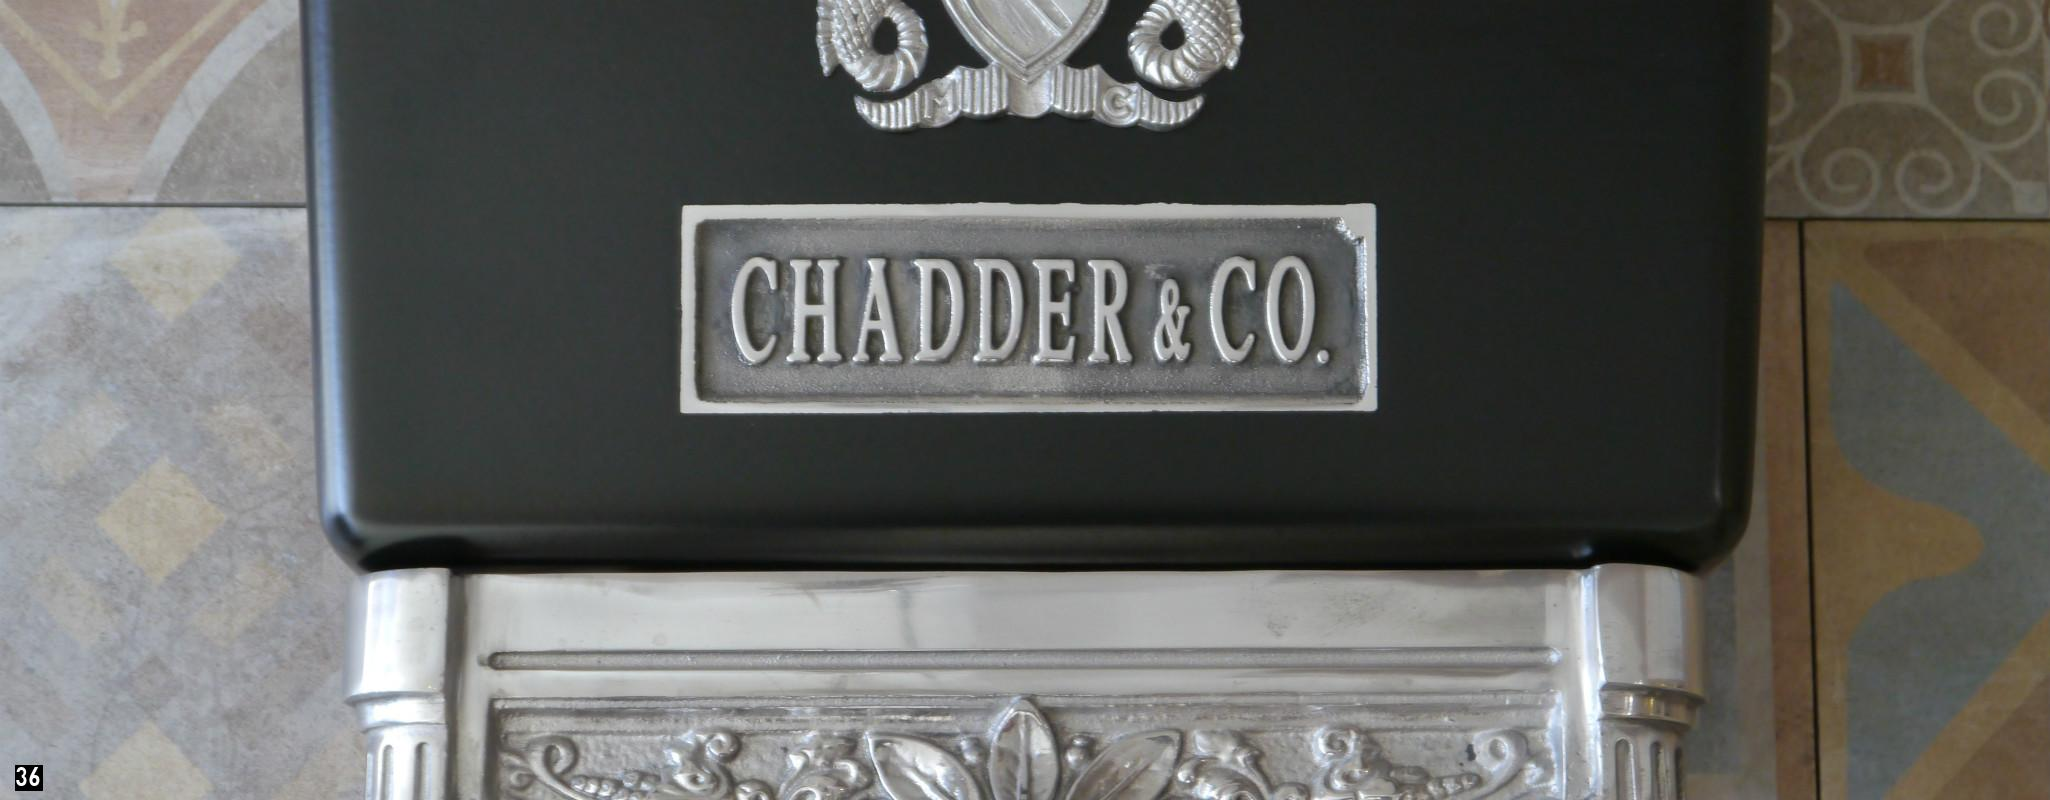 Bespoke  Cisterns , Bespoke Toilet Cisterns, with Personalised Name , Vintage Powder Room